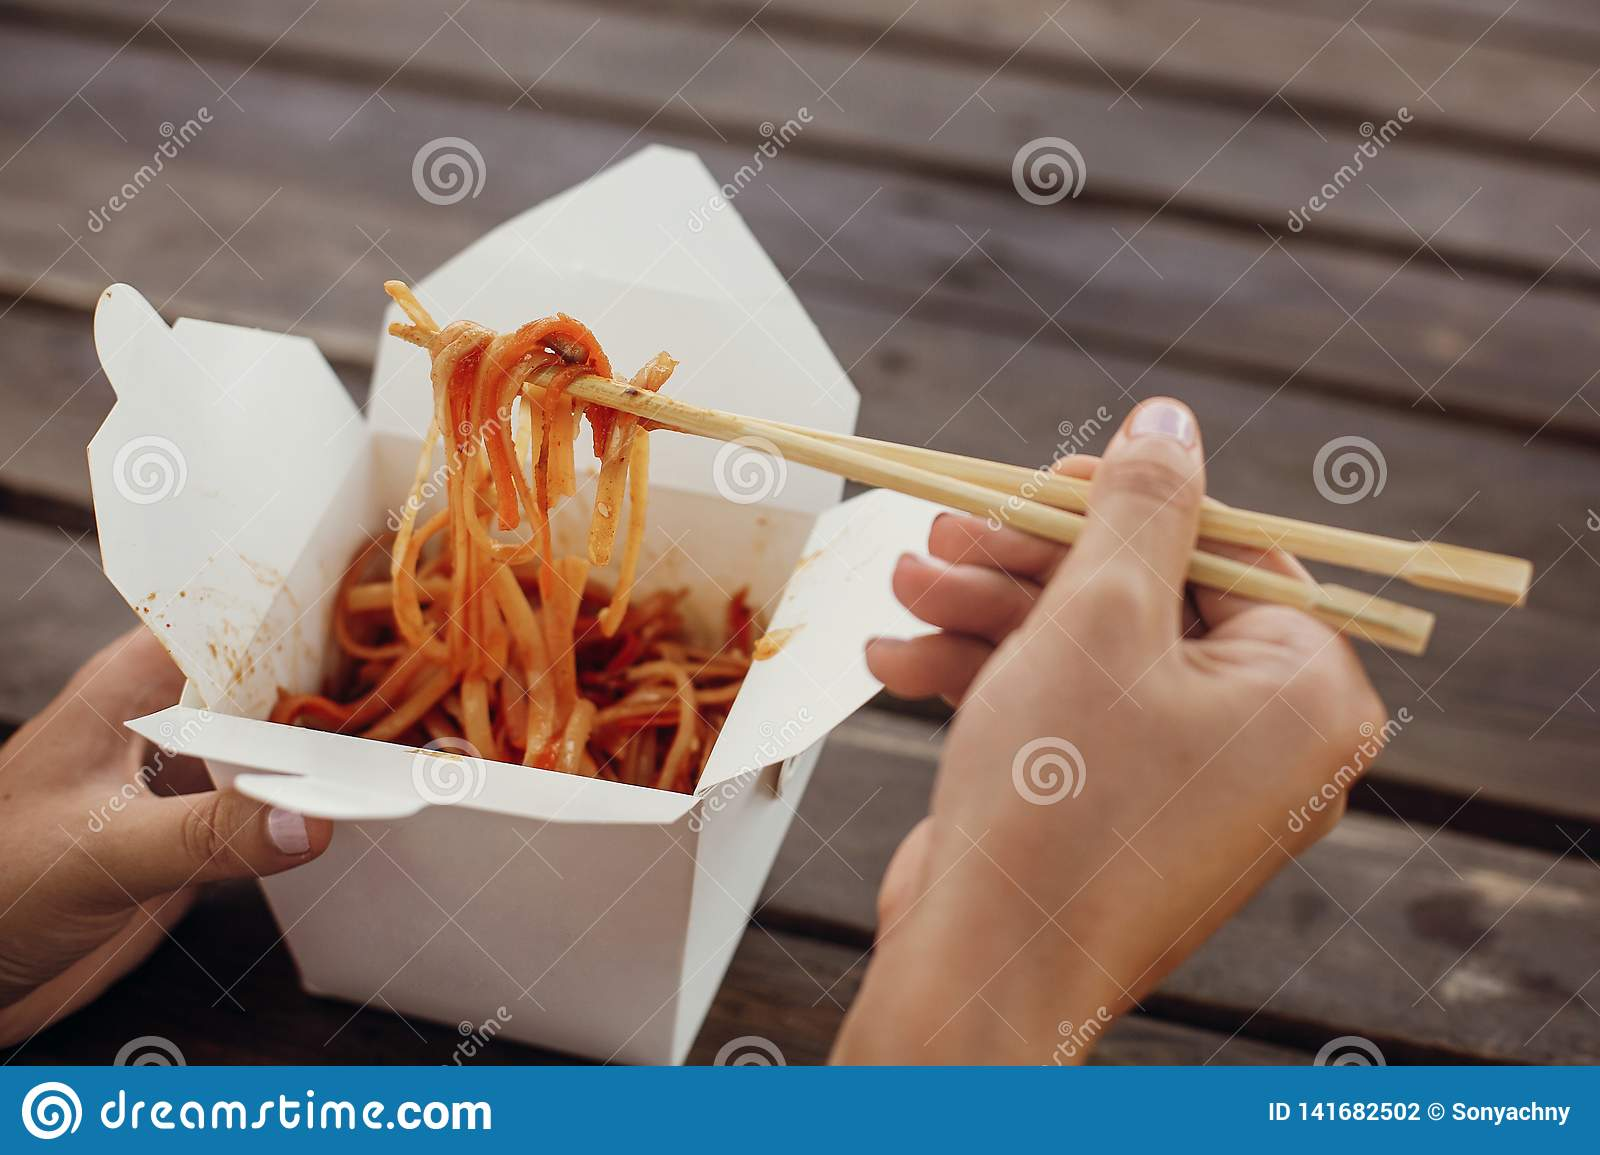 Wok With Noodles And Vegetables In Carton Box To Go And Bamboo